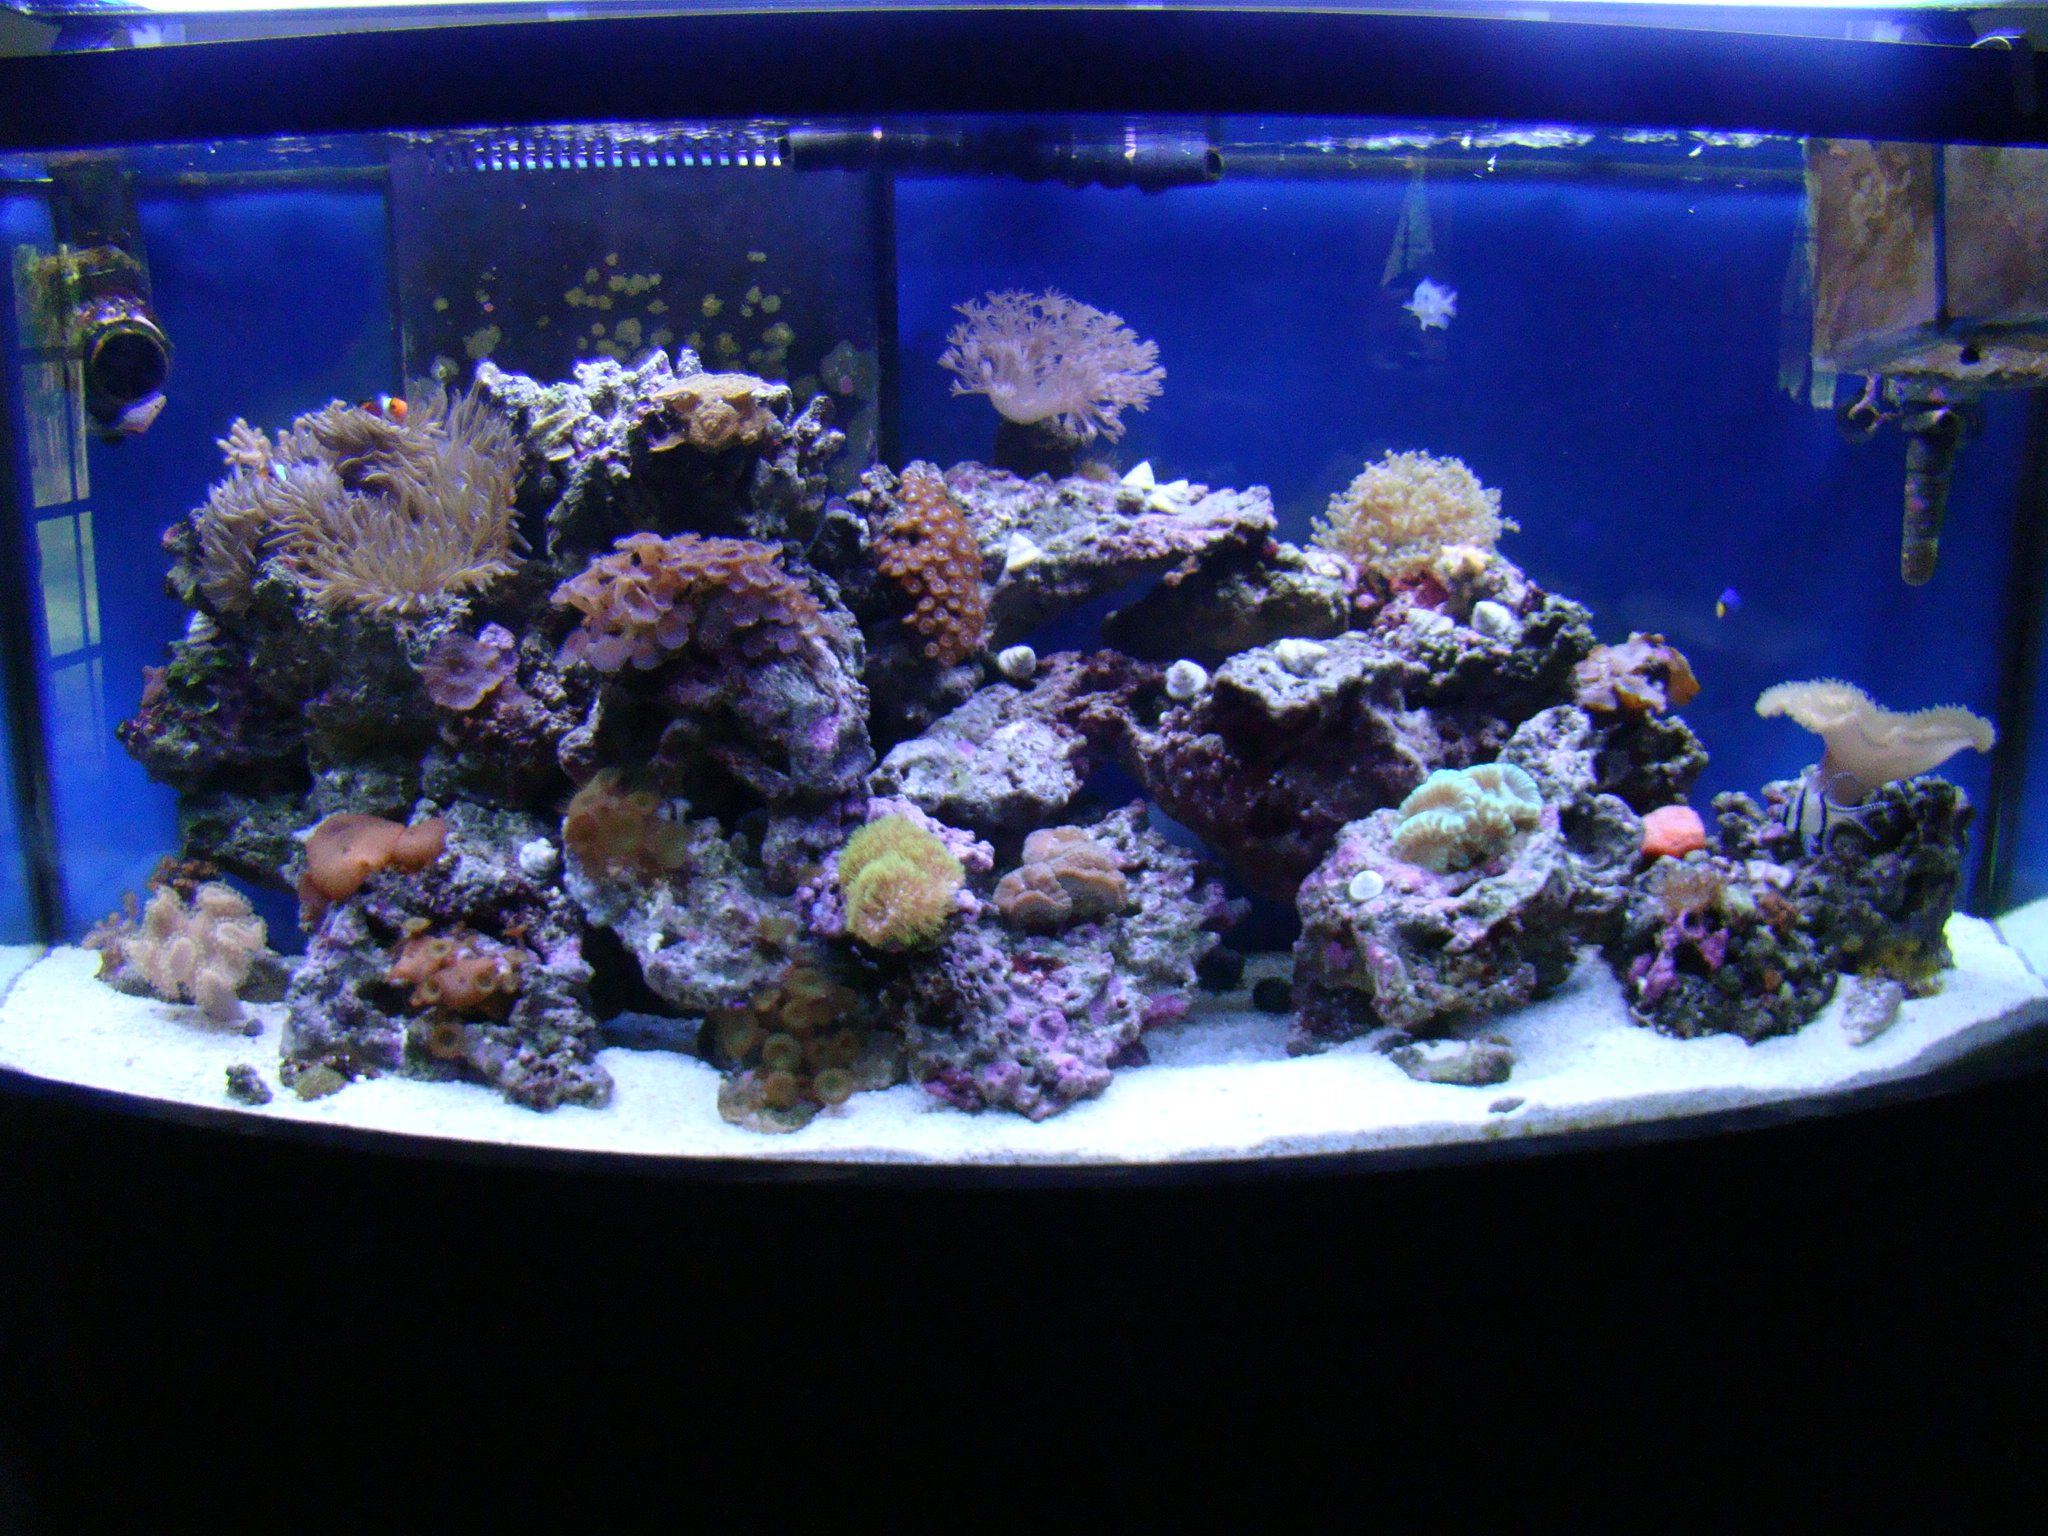 View full size image for 75 gallon fish tank dimensions